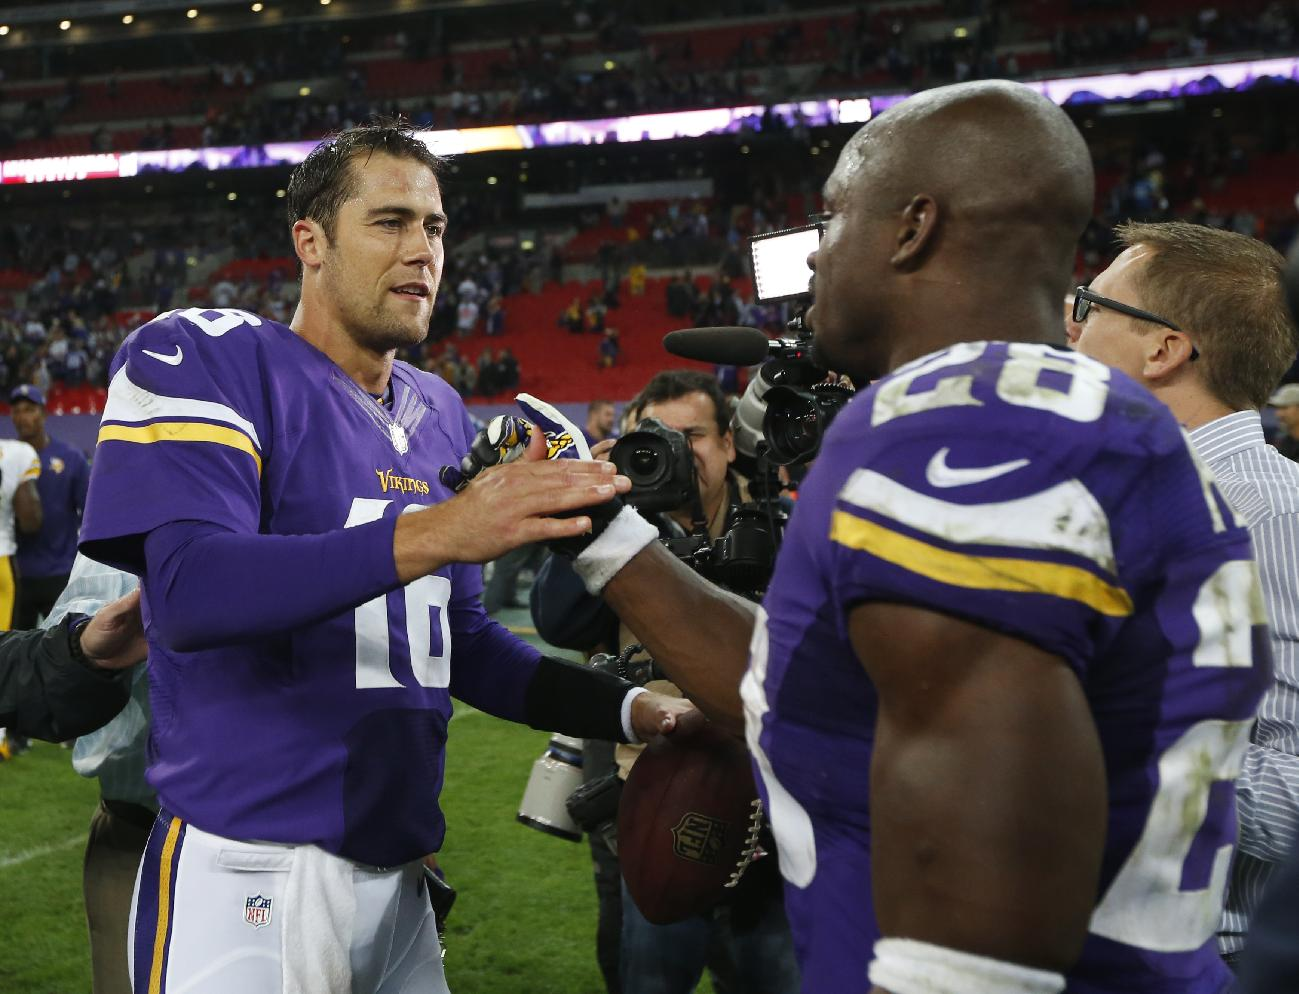 Adrian Peterson likes seeing Matt Cassel lead the huddle for the Vikings. (AP)